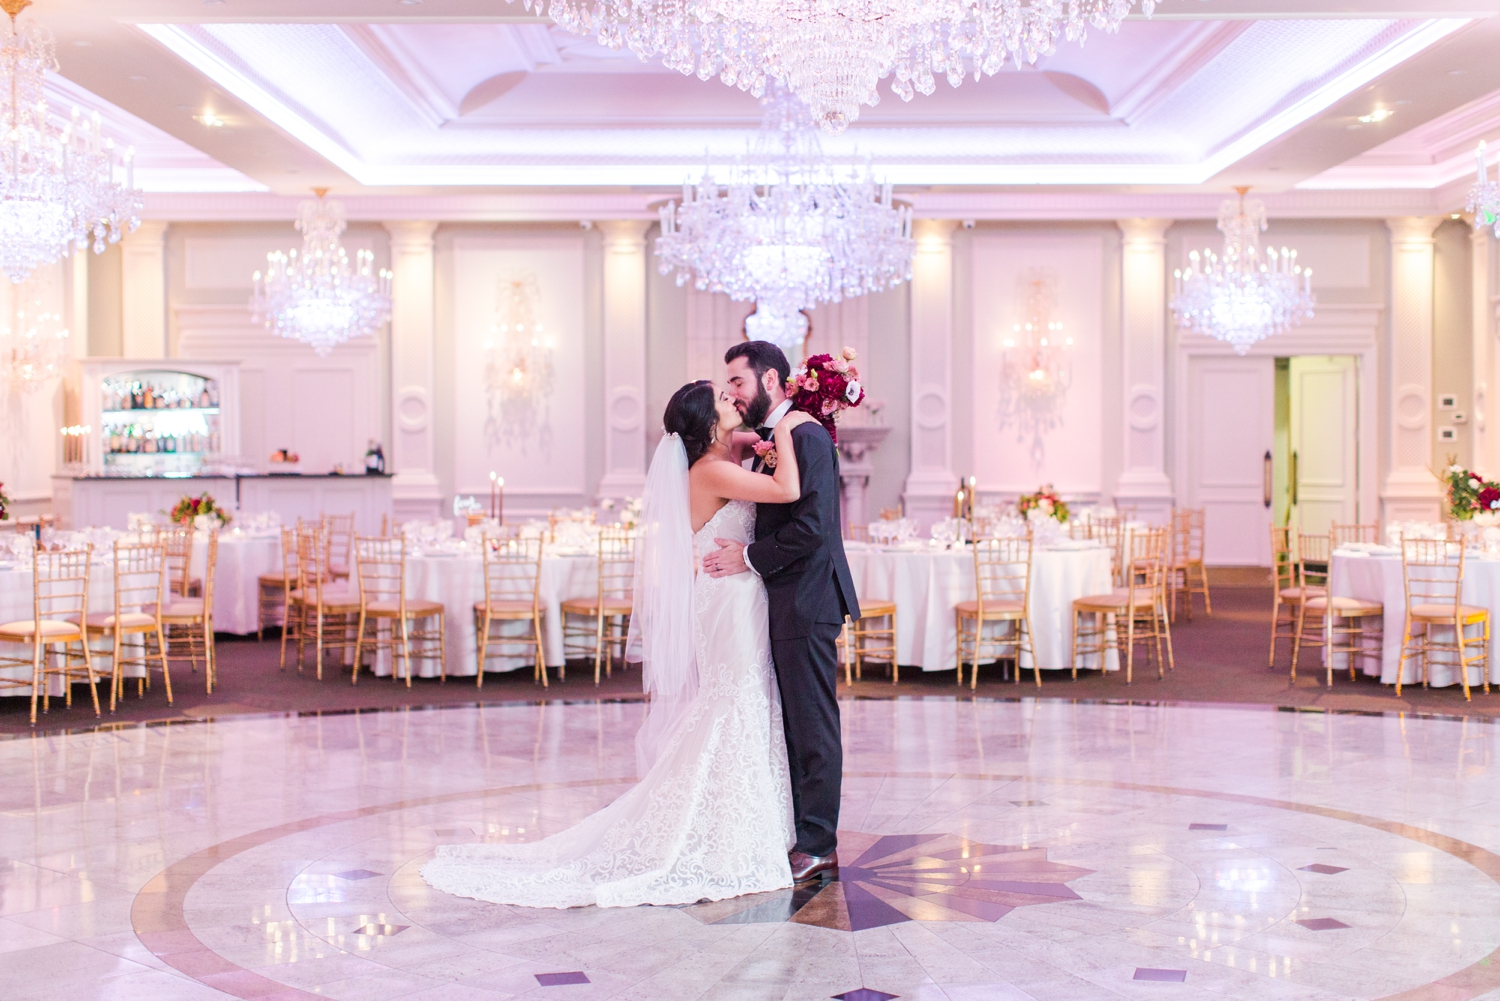 the-rockleigh-wedding-new-jersey-connecticut-photographer-shaina-lee-photography-photo-12.jpg